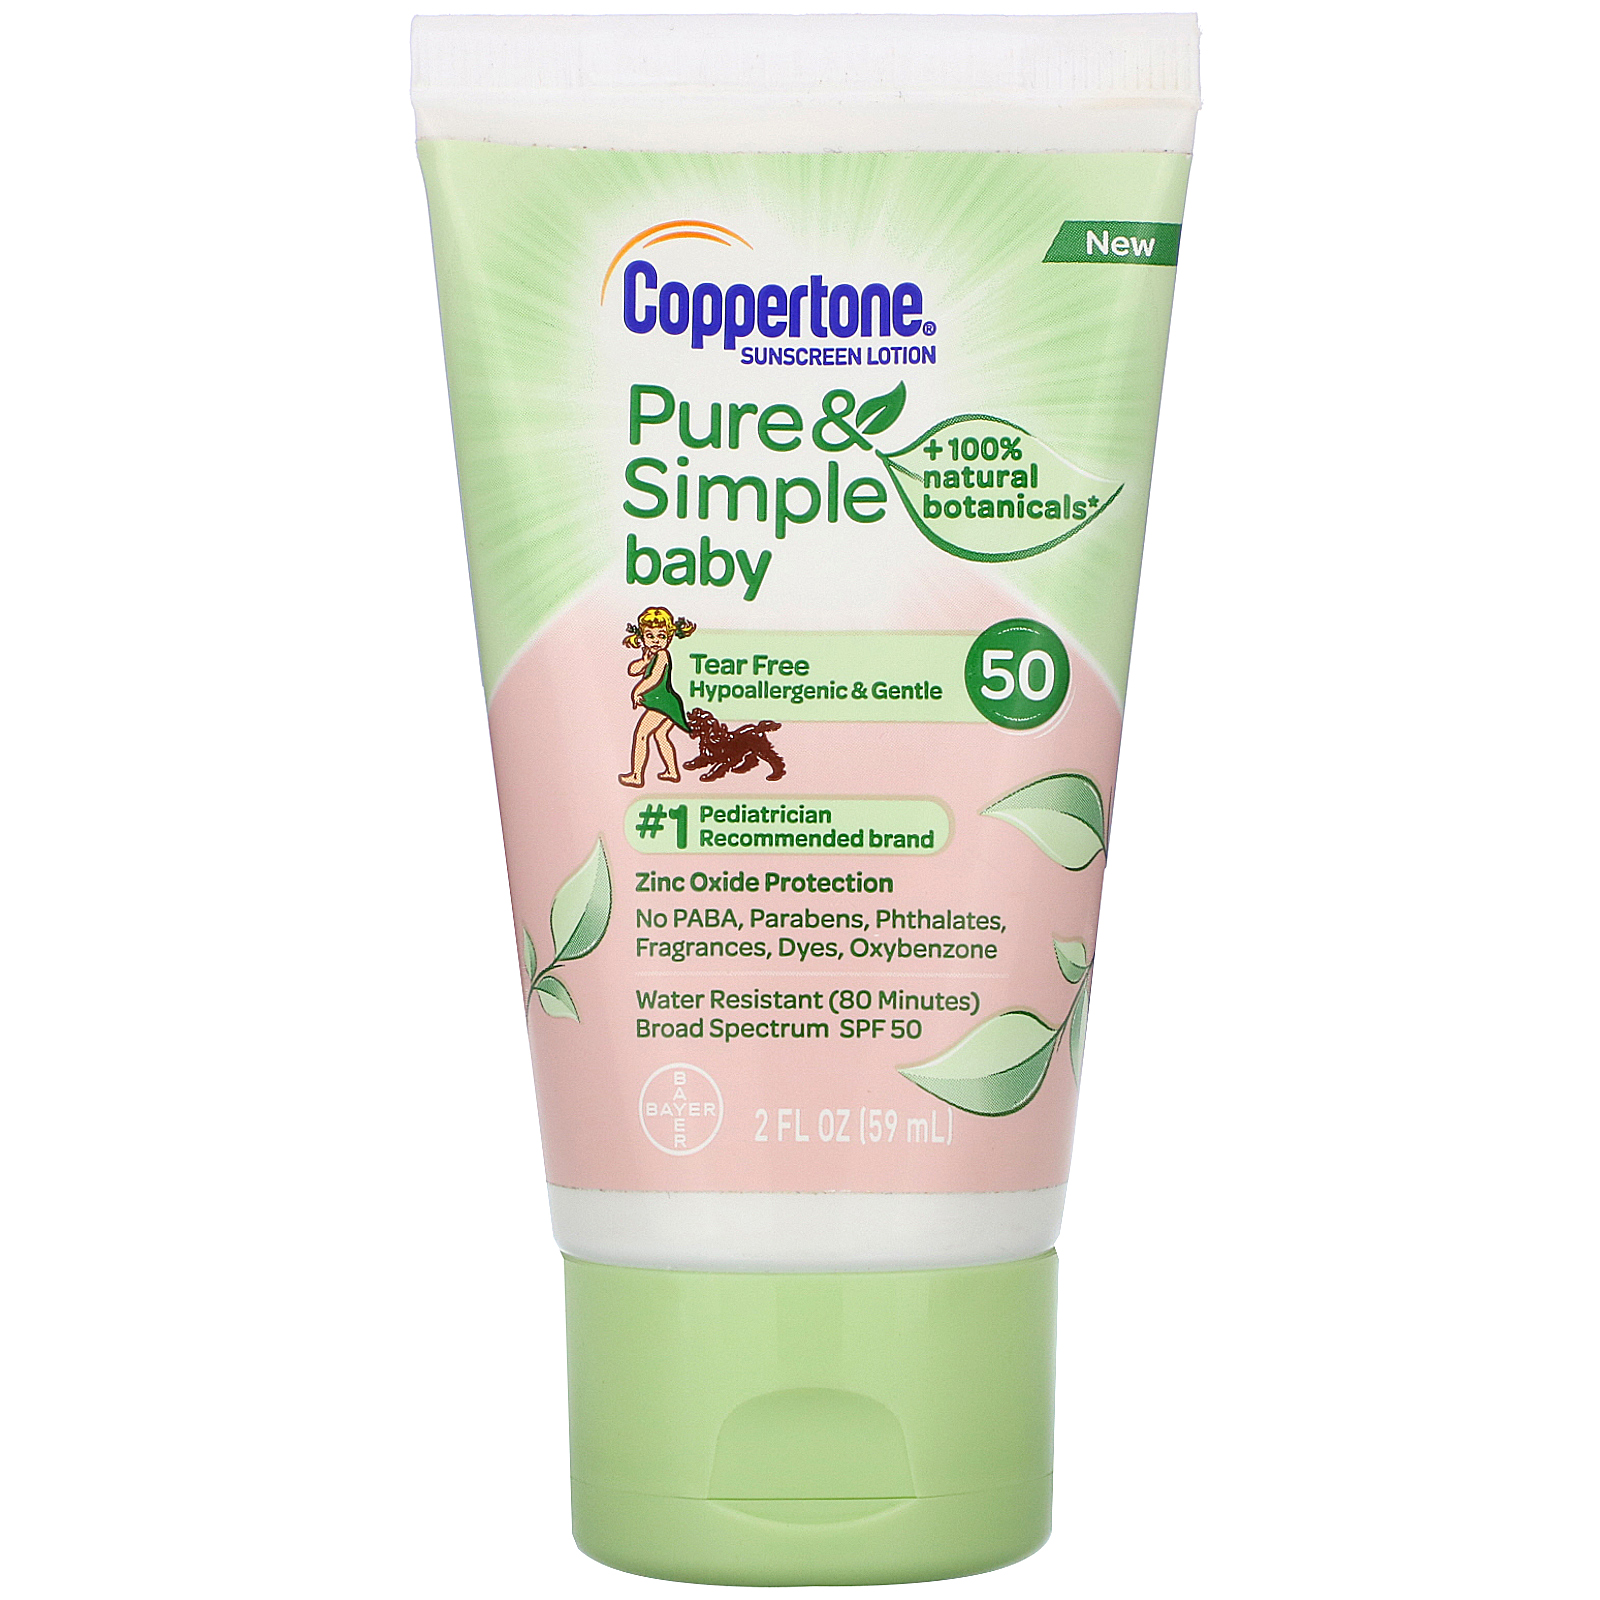 Coppertone, Baby, Pure & Simple, Sunscreen Lotion, SPF 50, 2 fl oz (59 ml)